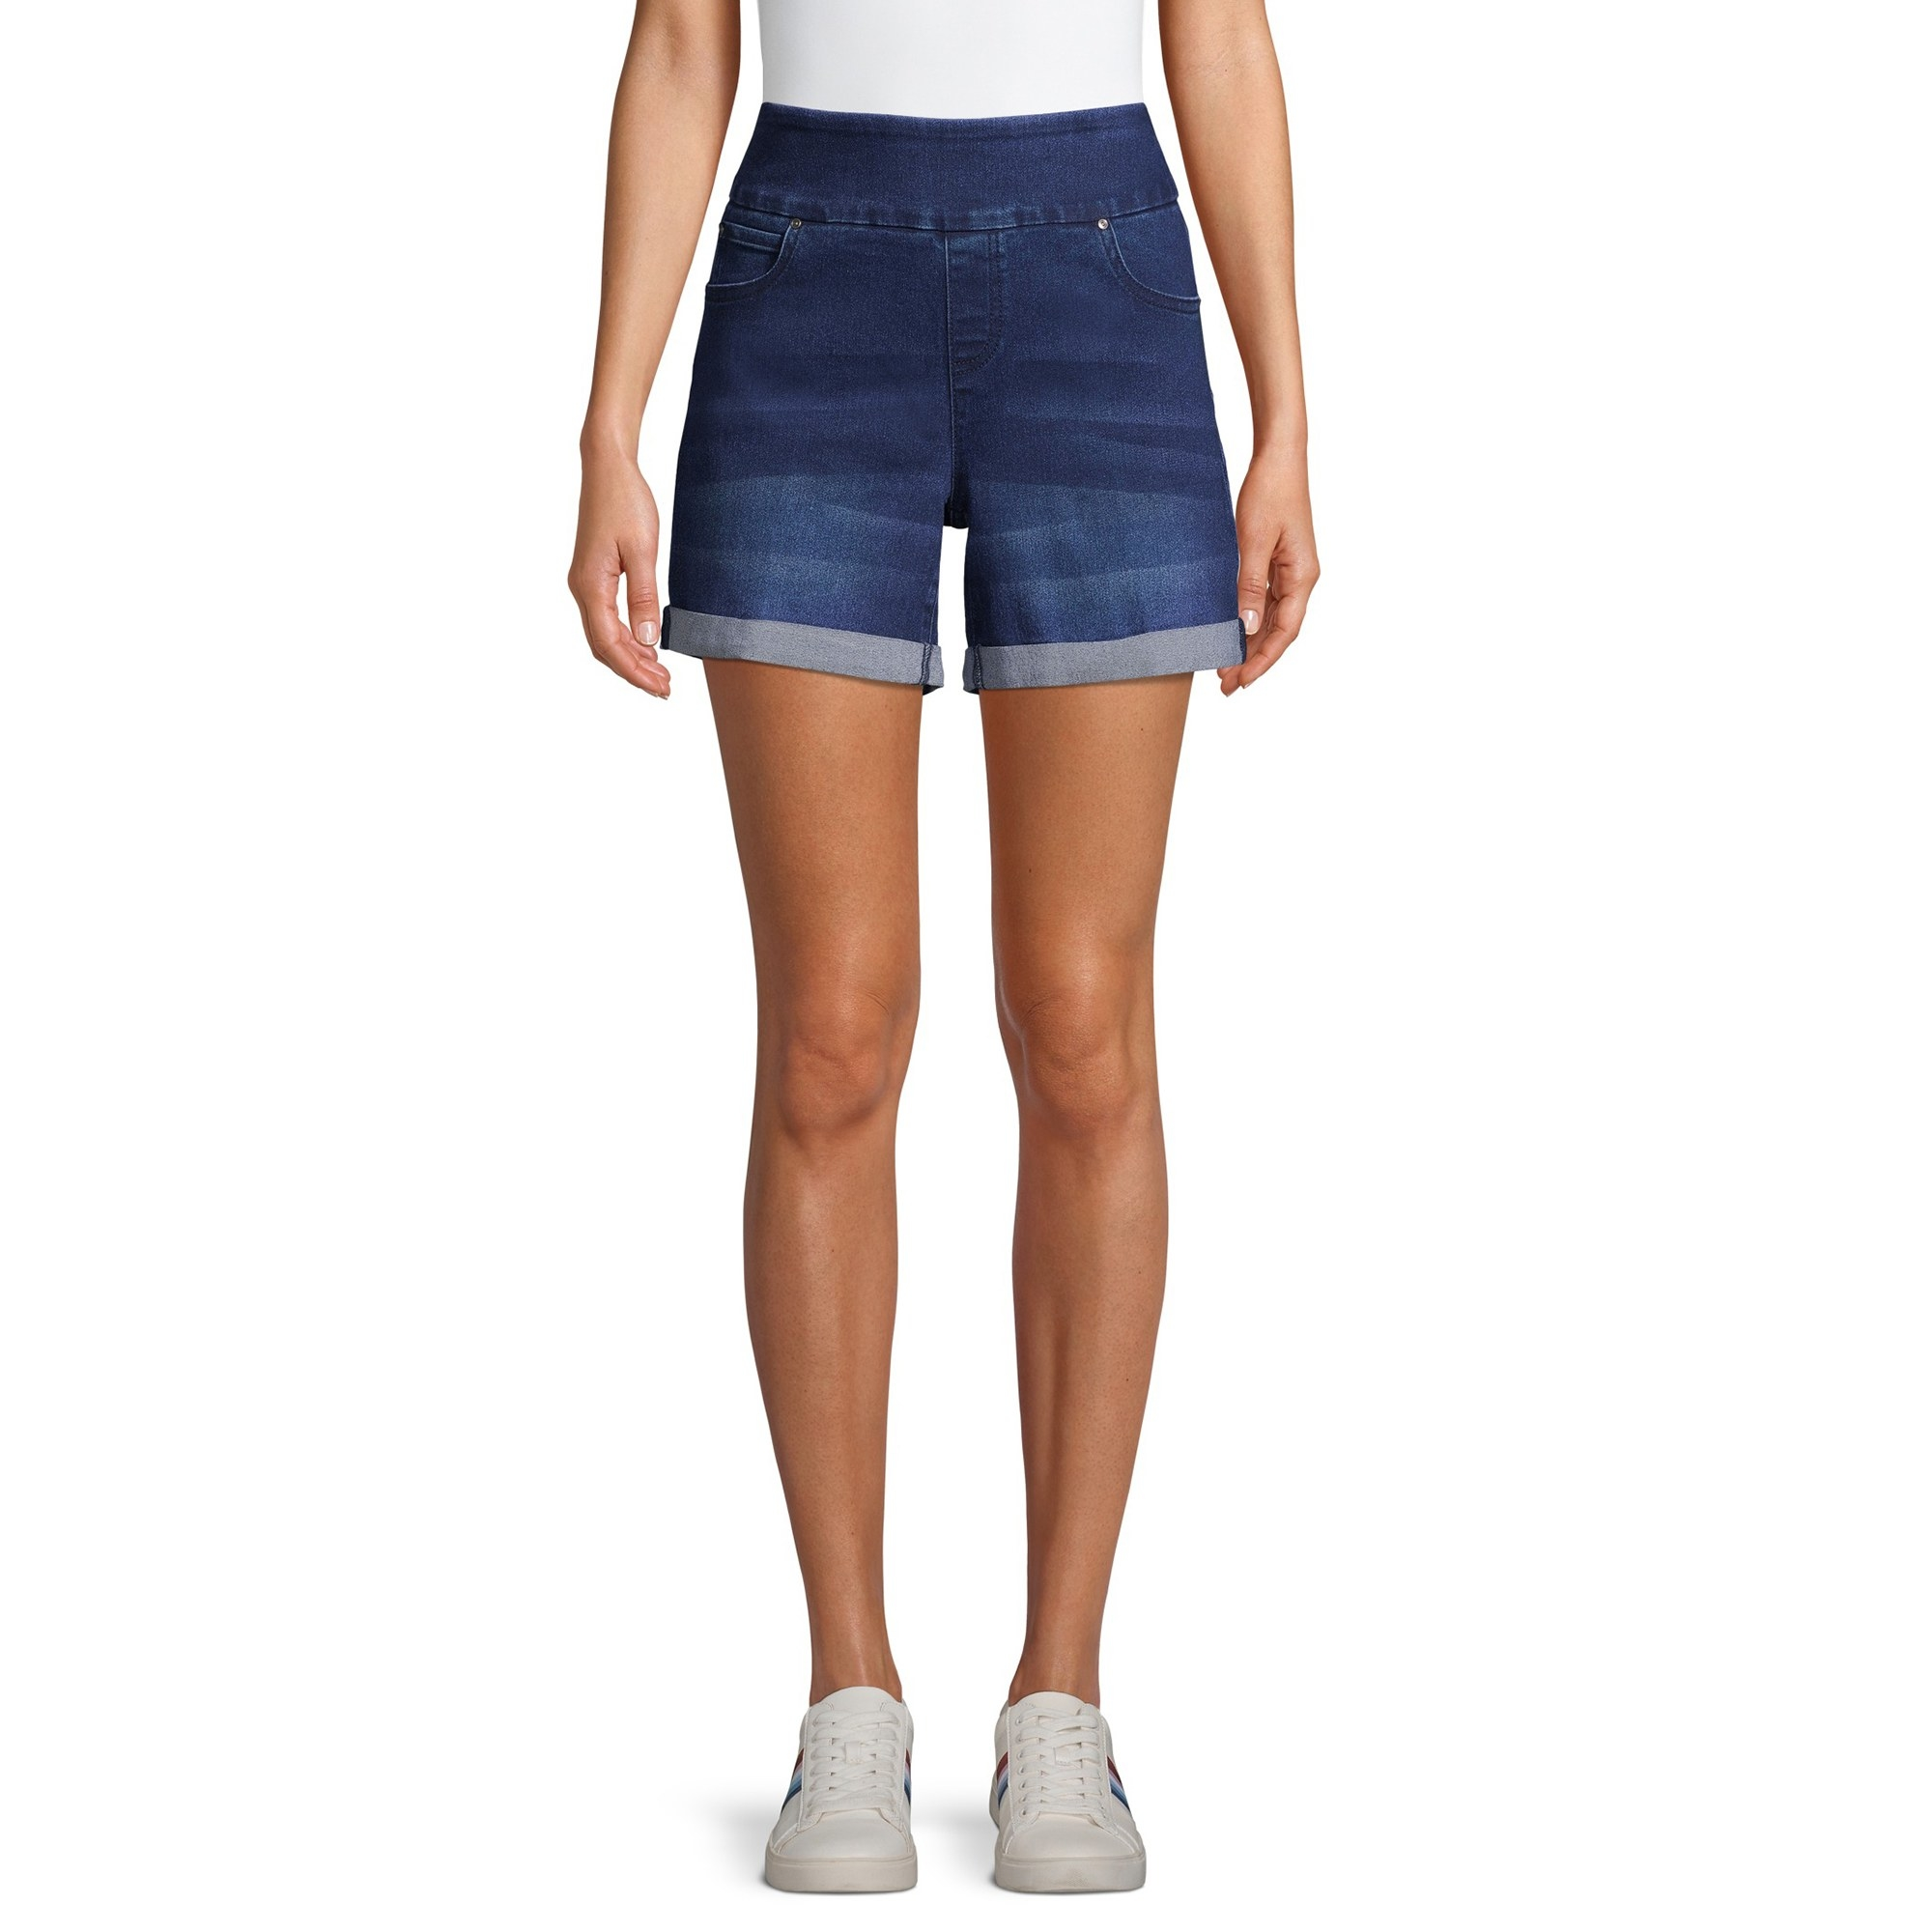 The high-waisted, dark denim shorts